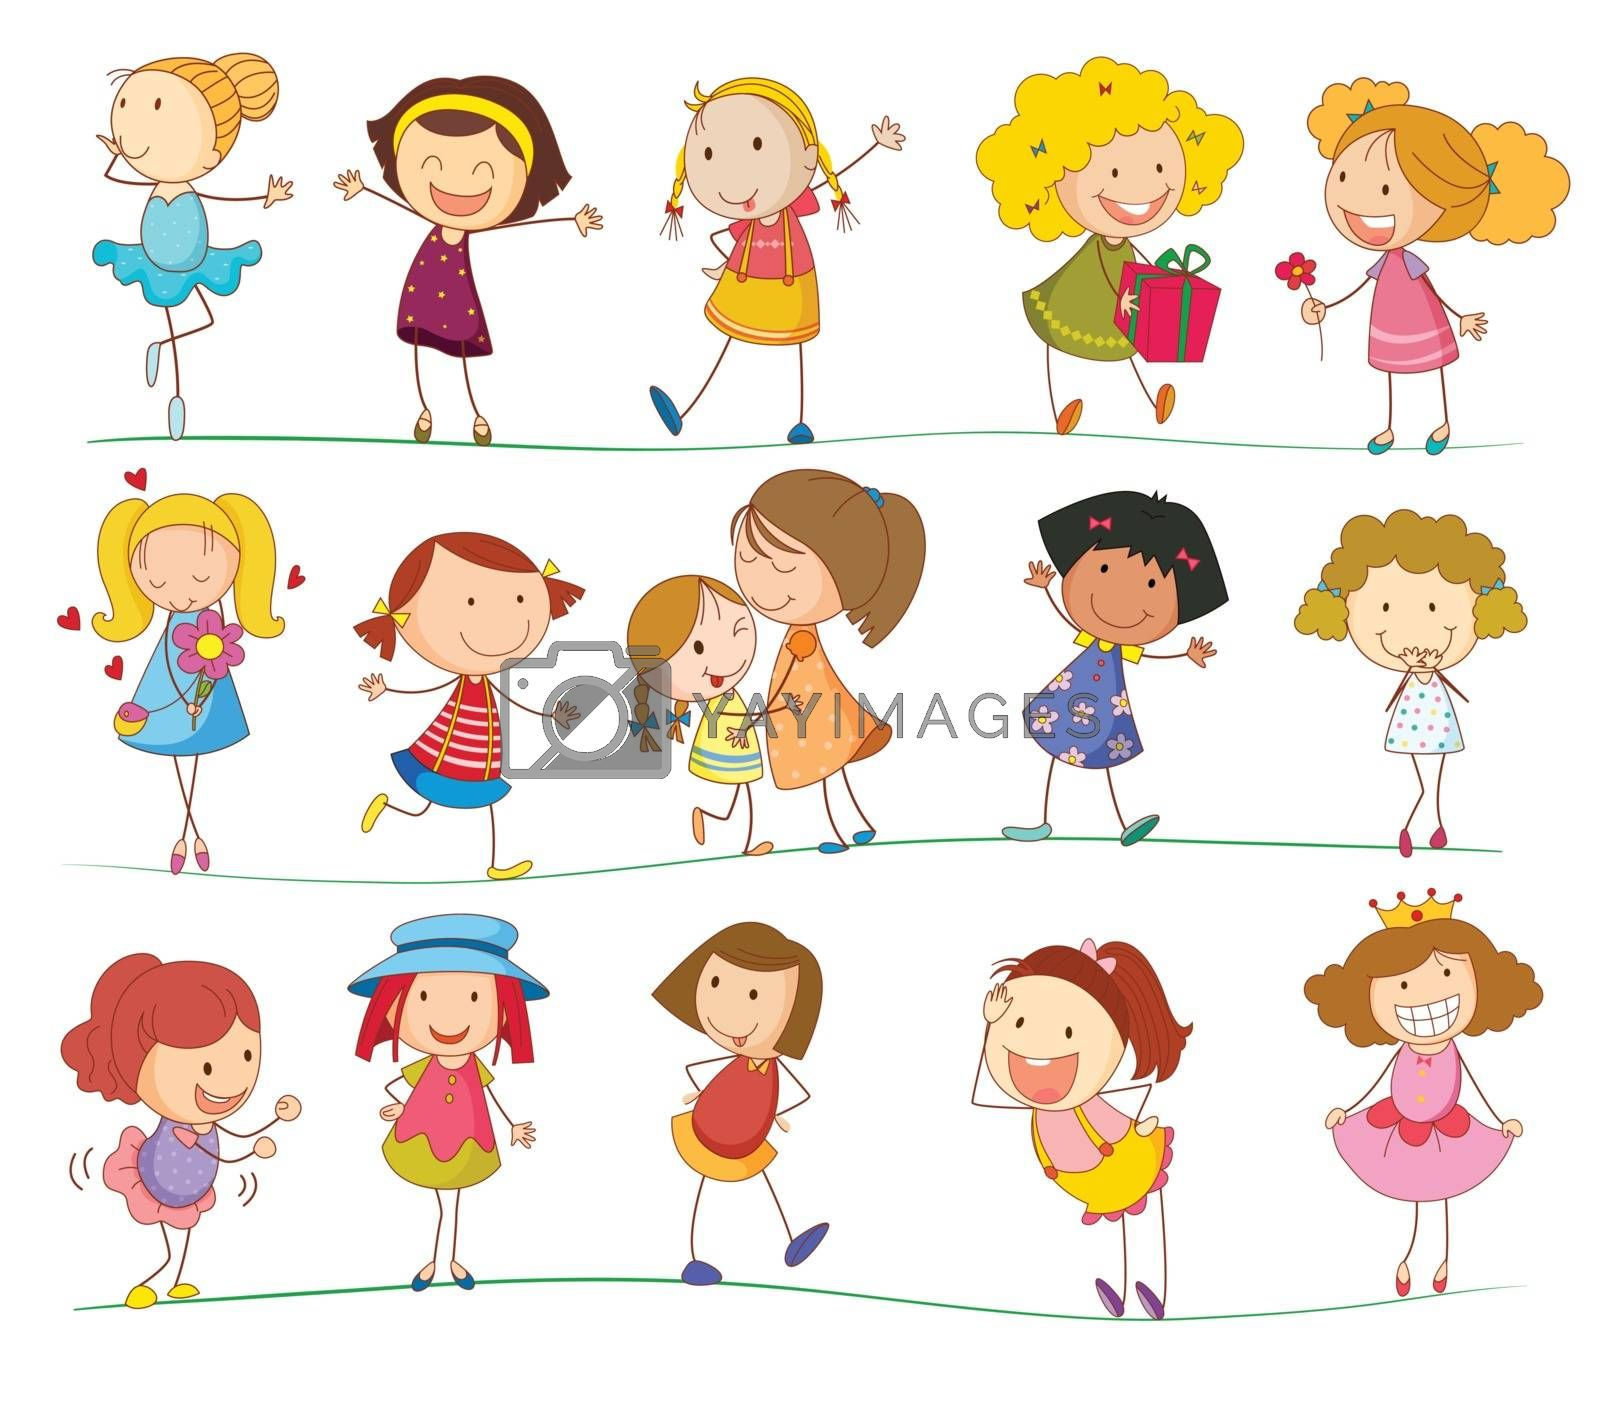 Illustration of a group of mixed kids